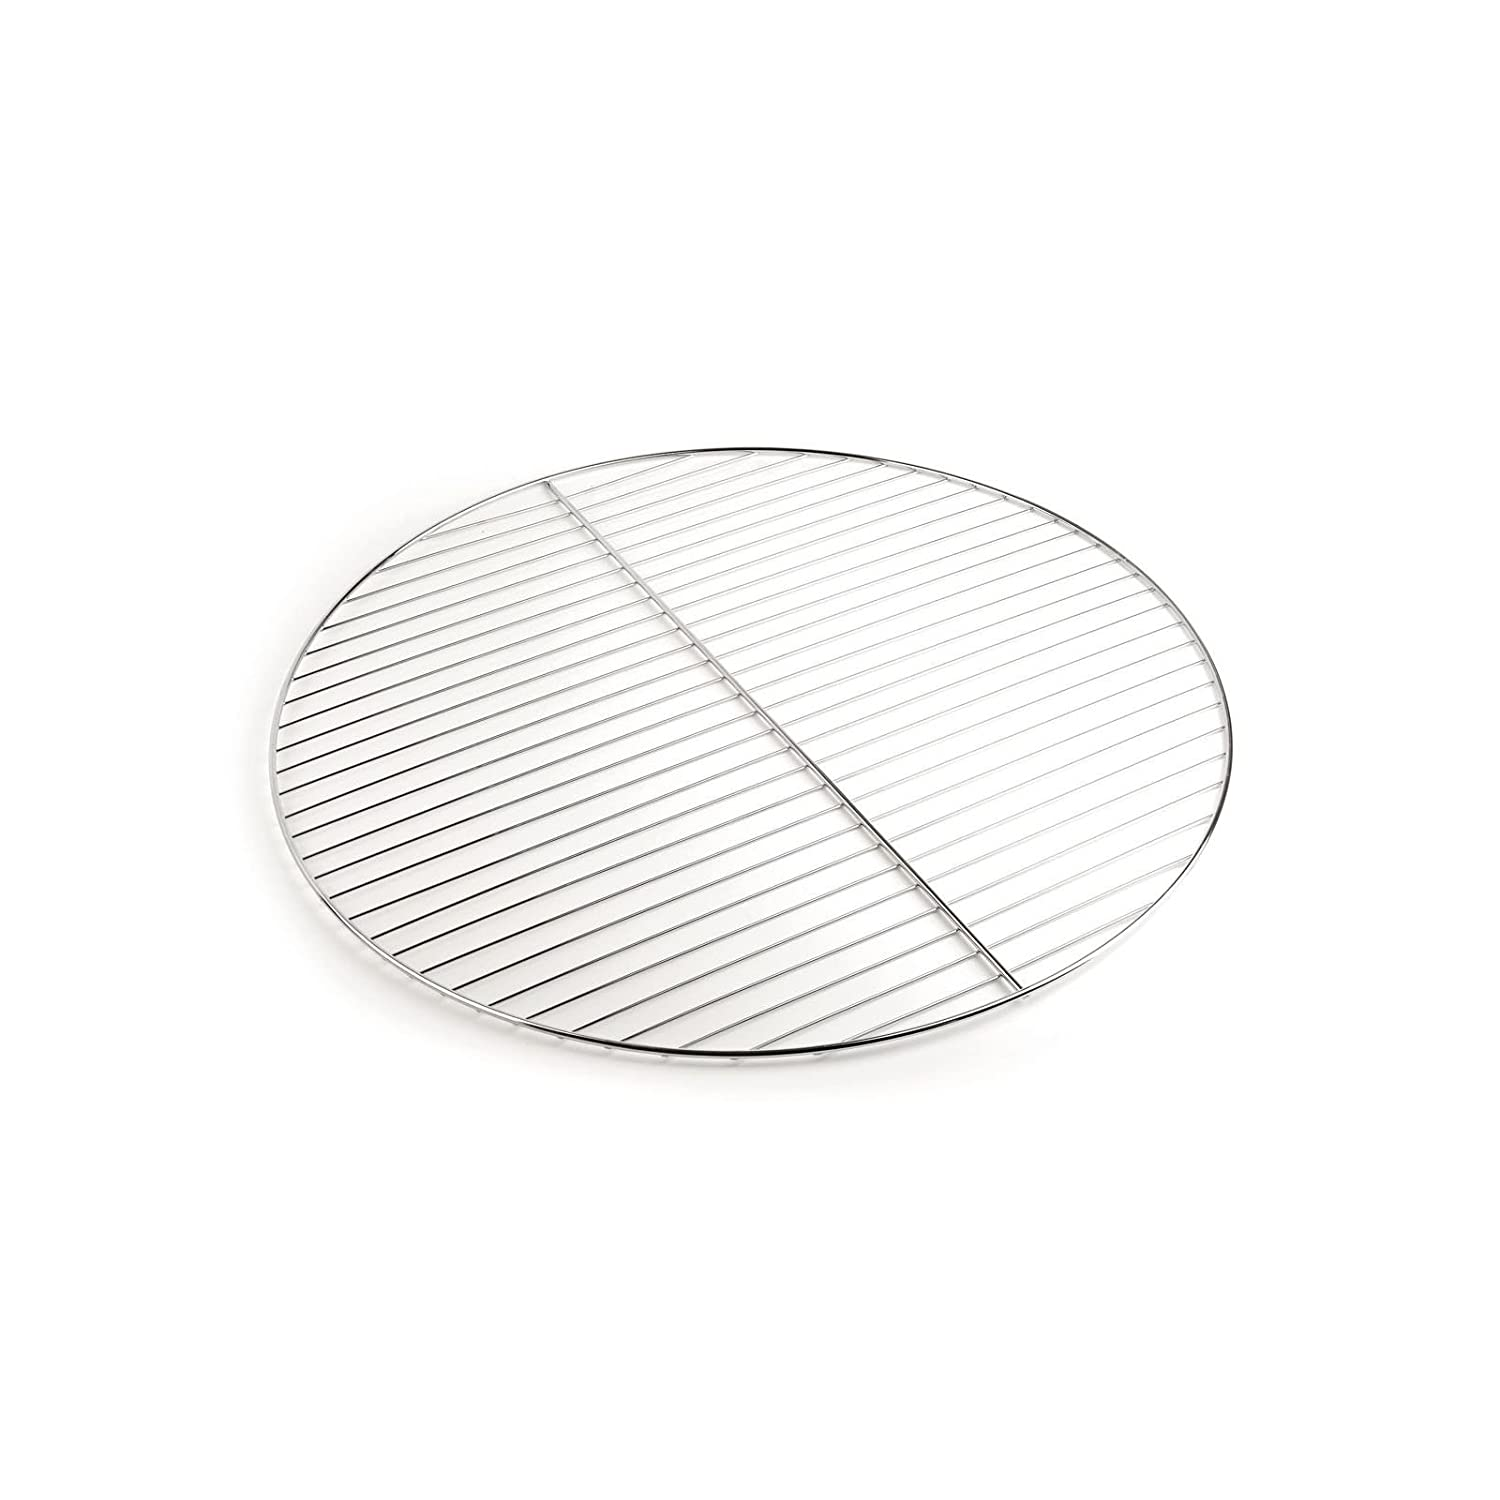 BBQ Buddy Round 53cm Dia Replacement Barbecue Grill - Fits round kettle BBQs a 57cm diameter